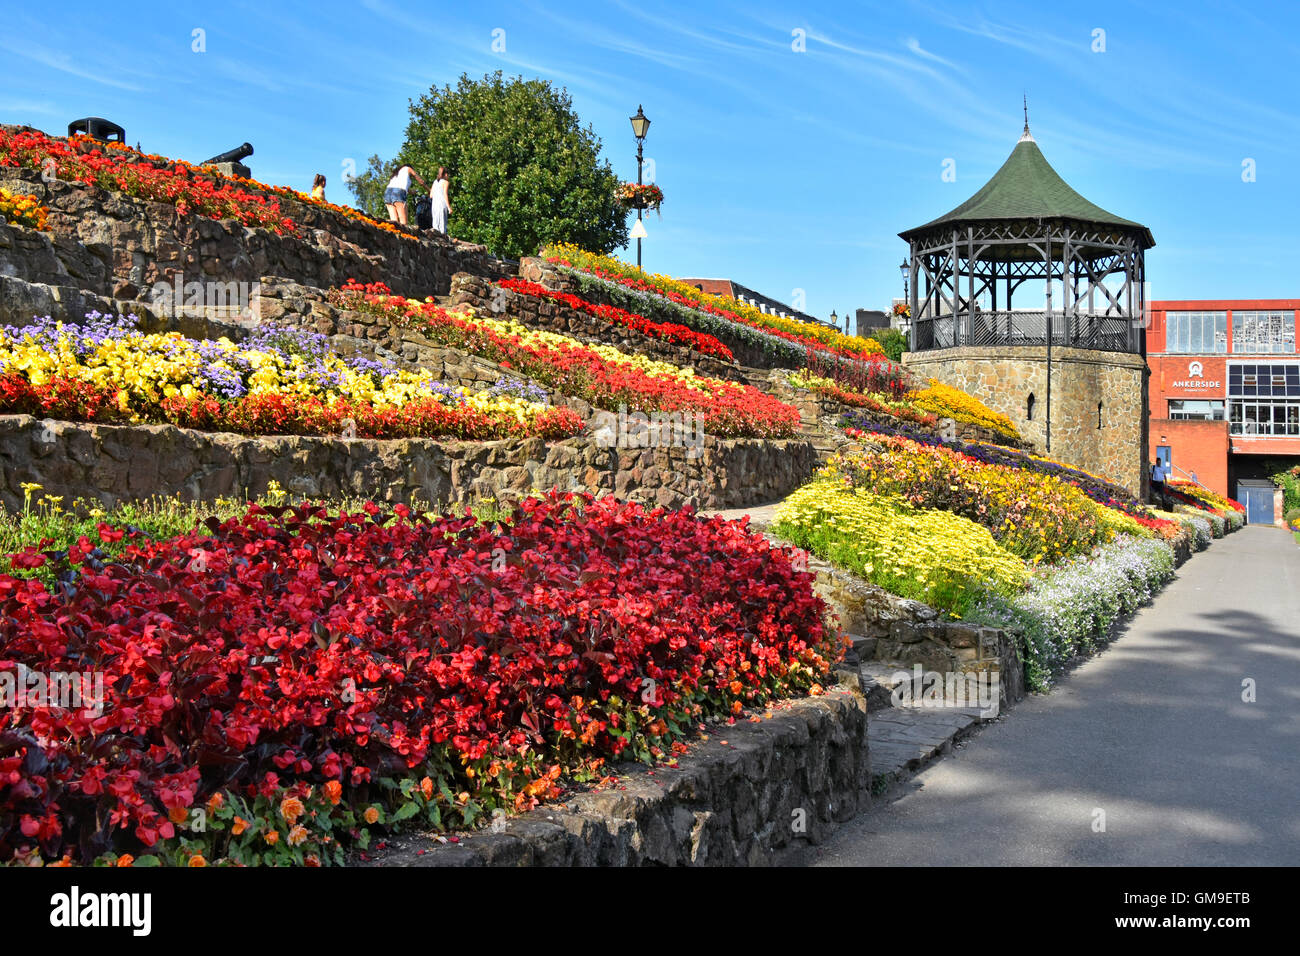 Summer flowers display on terraced embankment in public park gardens beside bandstand in Castle Grounds Tamworth - Stock Image